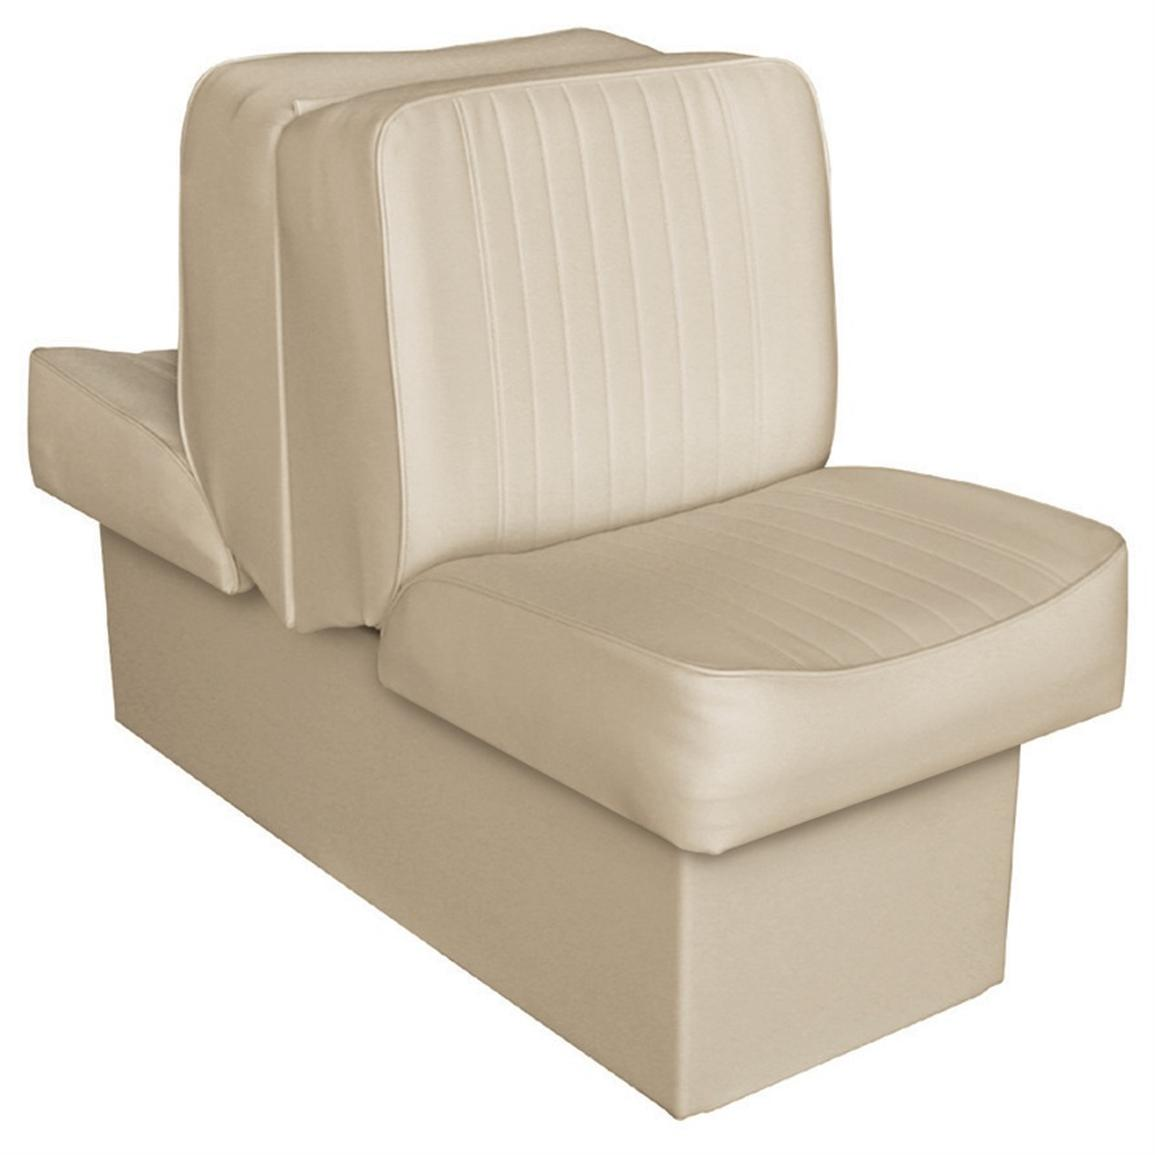 Wise Deluxe Boat Lounge Seat, Sand